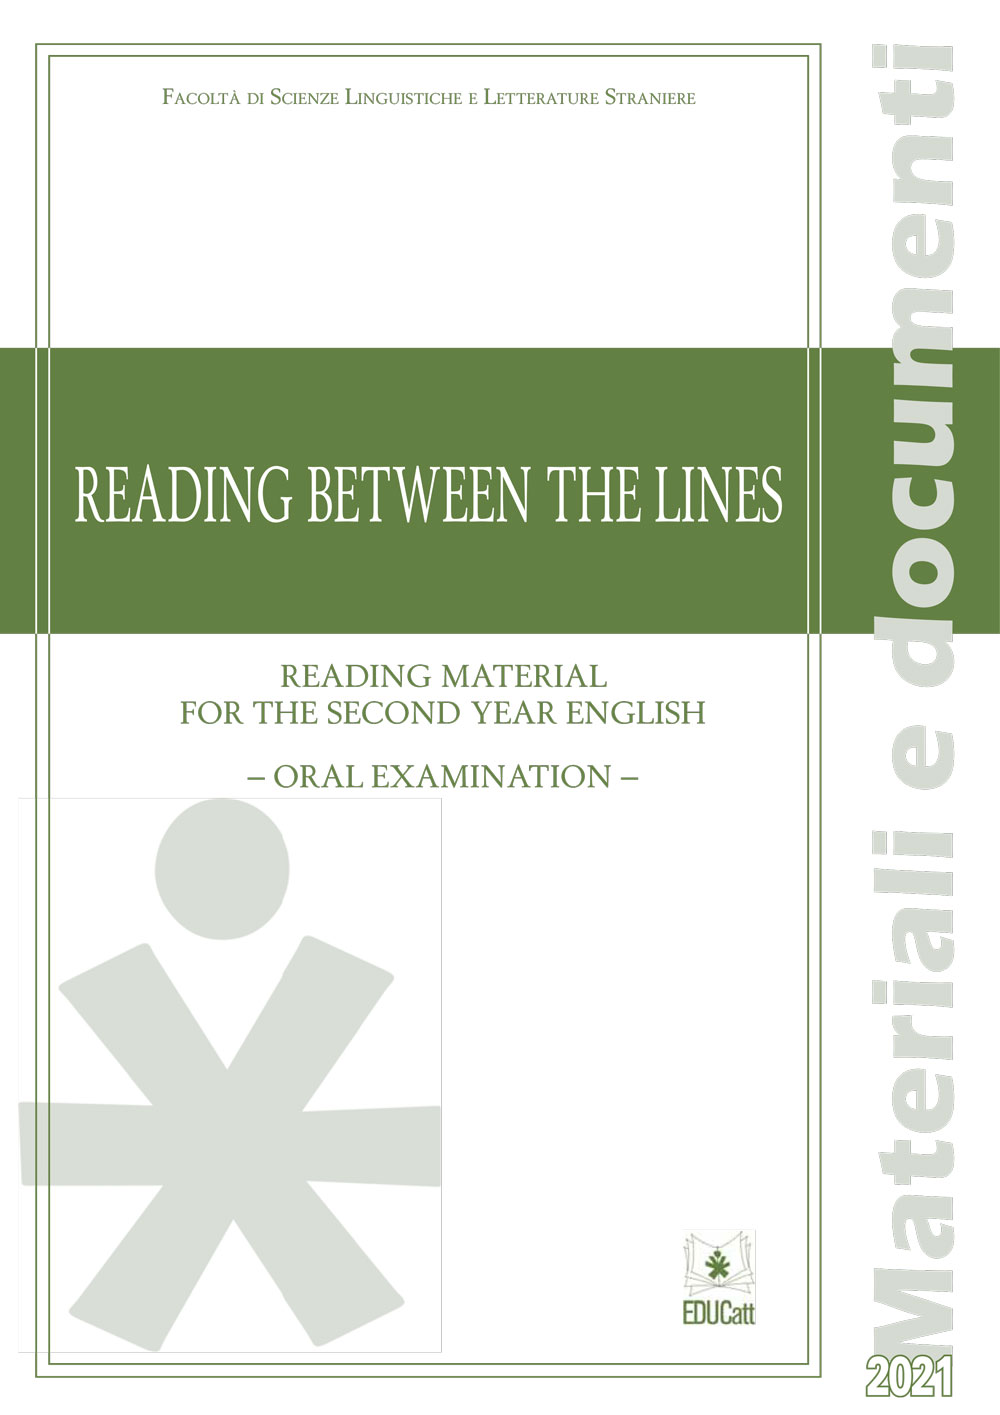 READING BETWEEN THE LINES. READING MATERIAL FOR THE SECOND YEAR ENGLISH ORAL EXAMINATION 2021